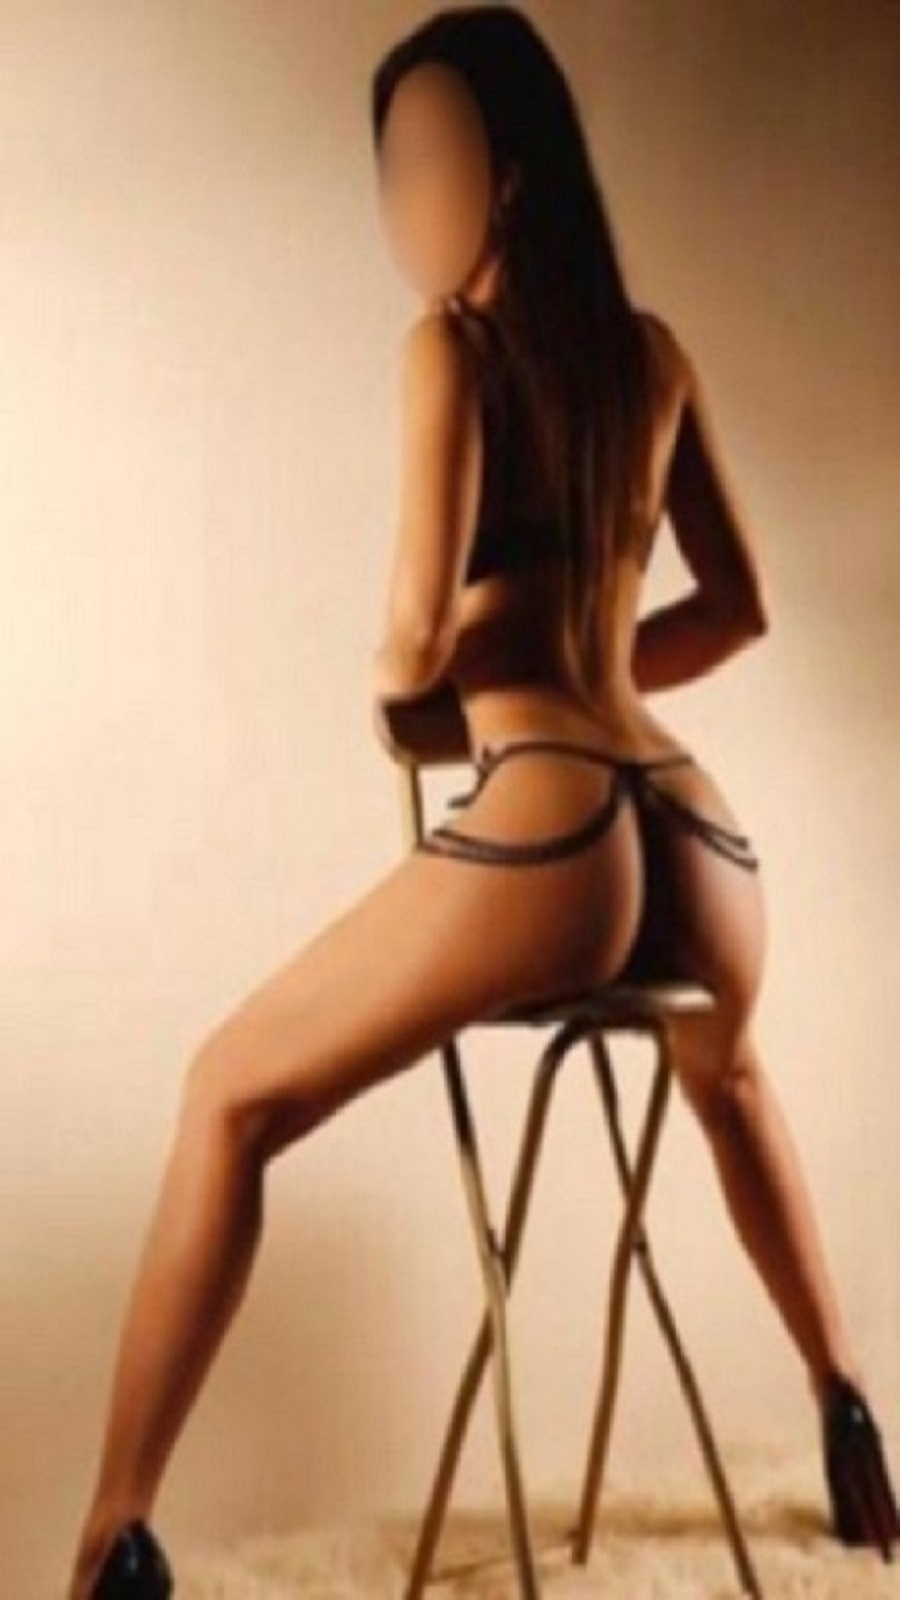 If you are looking for the perfect companion tonight give us a call on 07399733096 to book Evie for the best night of your life.